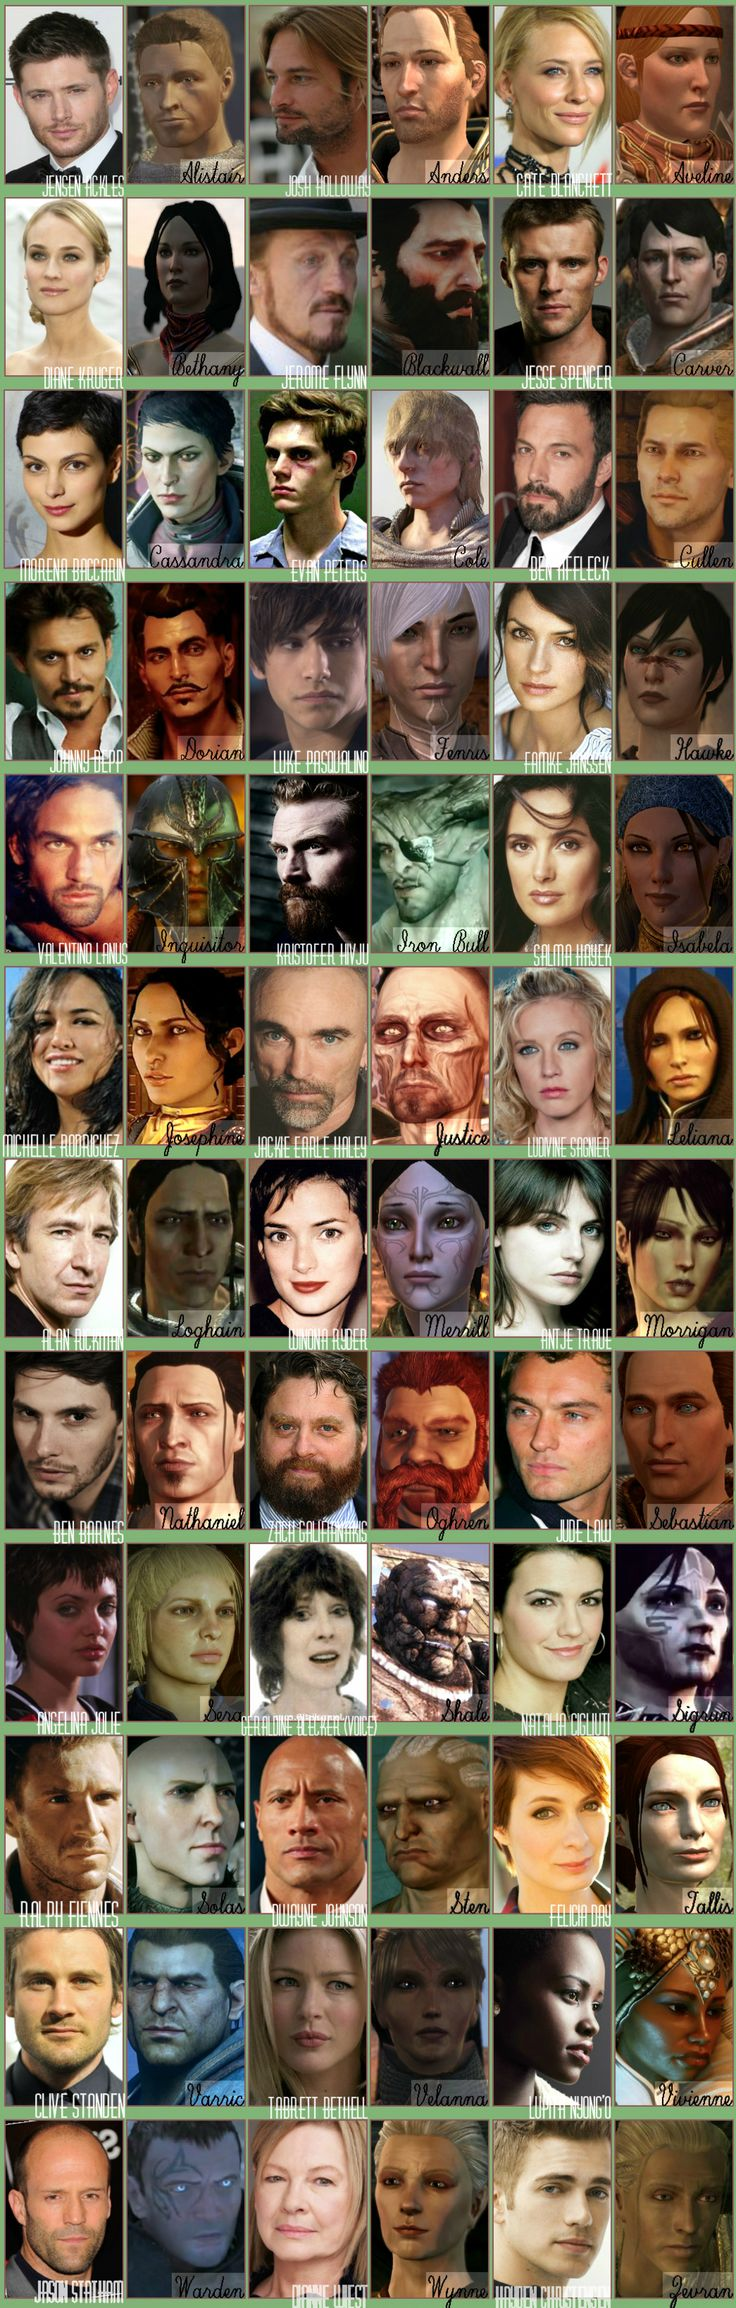 Dragon Age Cast by greasedrips.deviantart.com on @DeviantArt [[You'll have to recast Loghain... :( Also not a fan of the Cullen or Alistair ones. I know I've seen others.]]